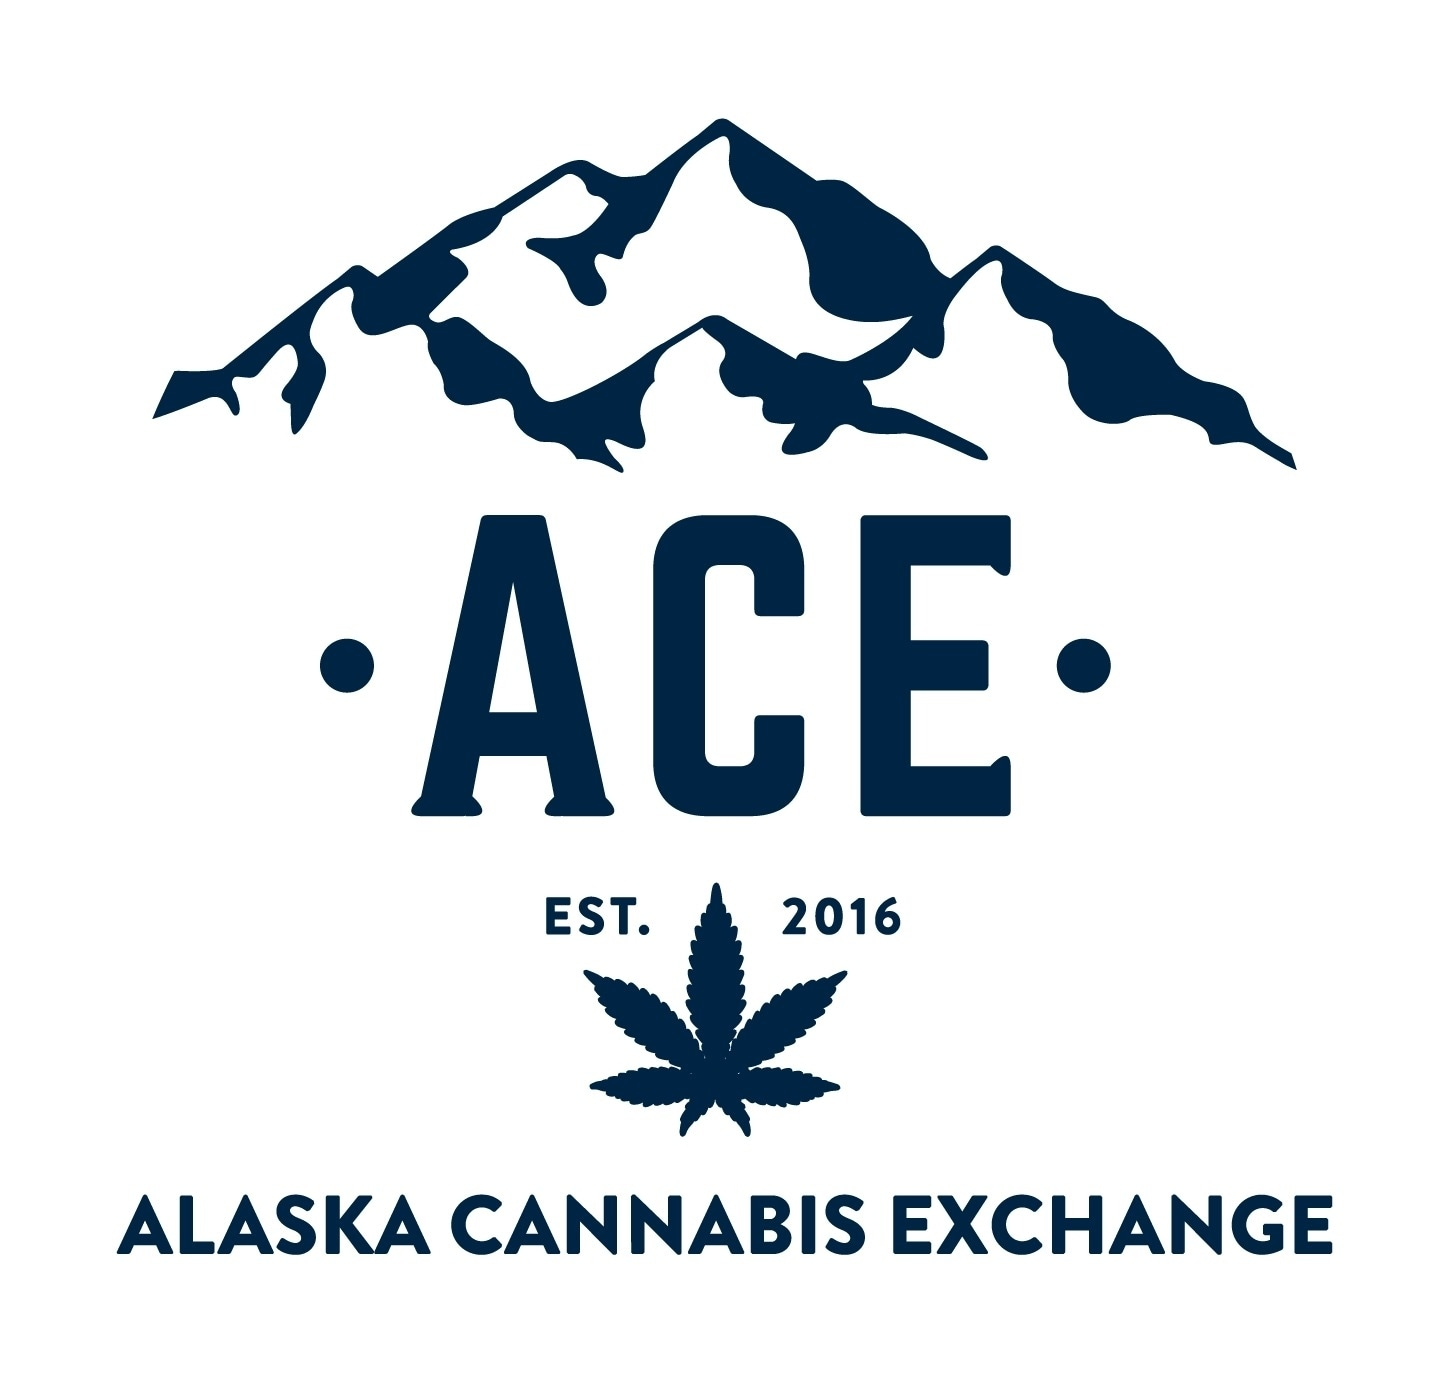 Alaska Cannabis Exchange promo codes